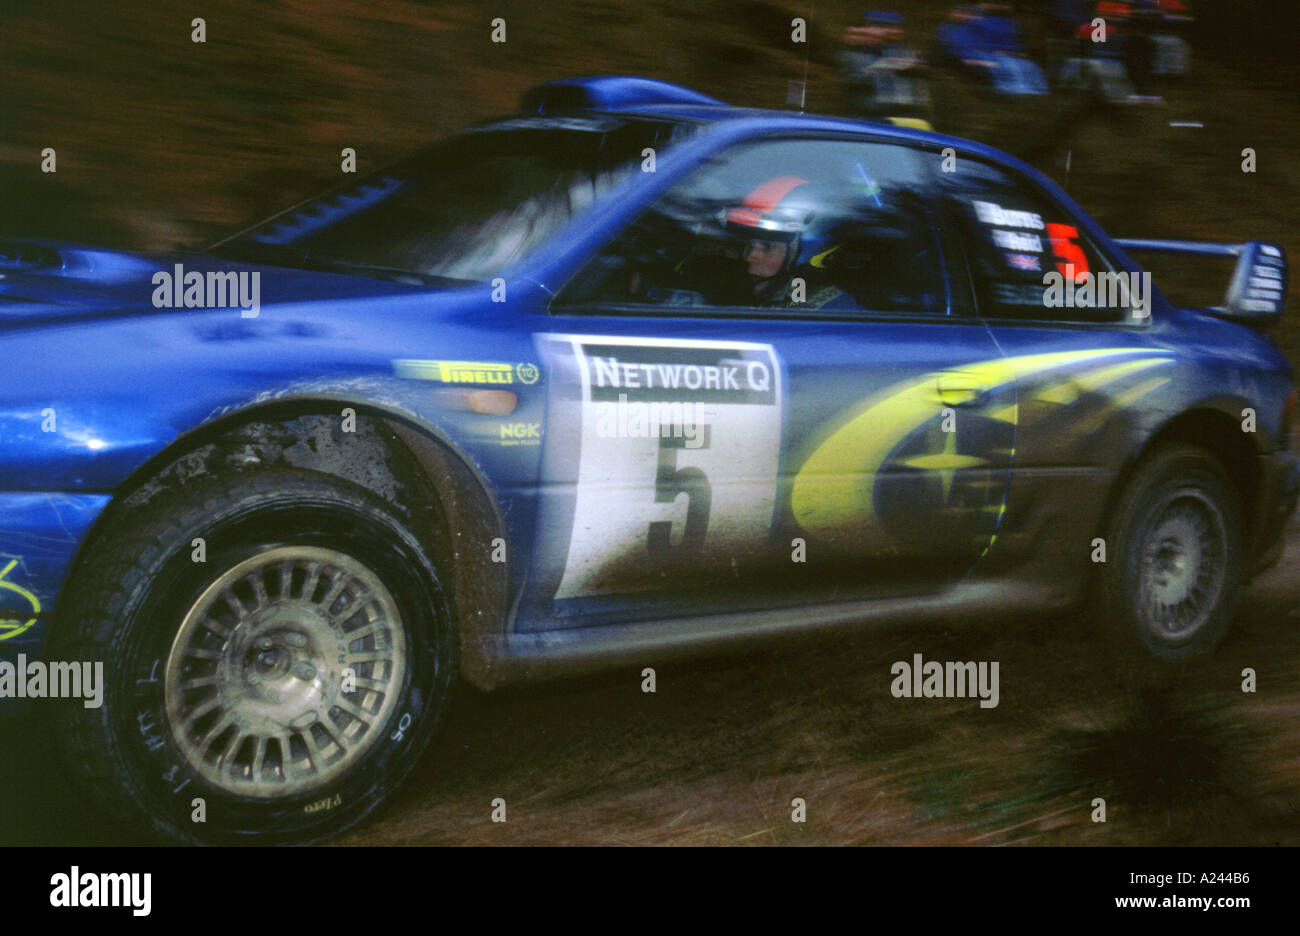 Subaru Impreza Wrc Stock Photos & Subaru Impreza Wrc Stock Images ...